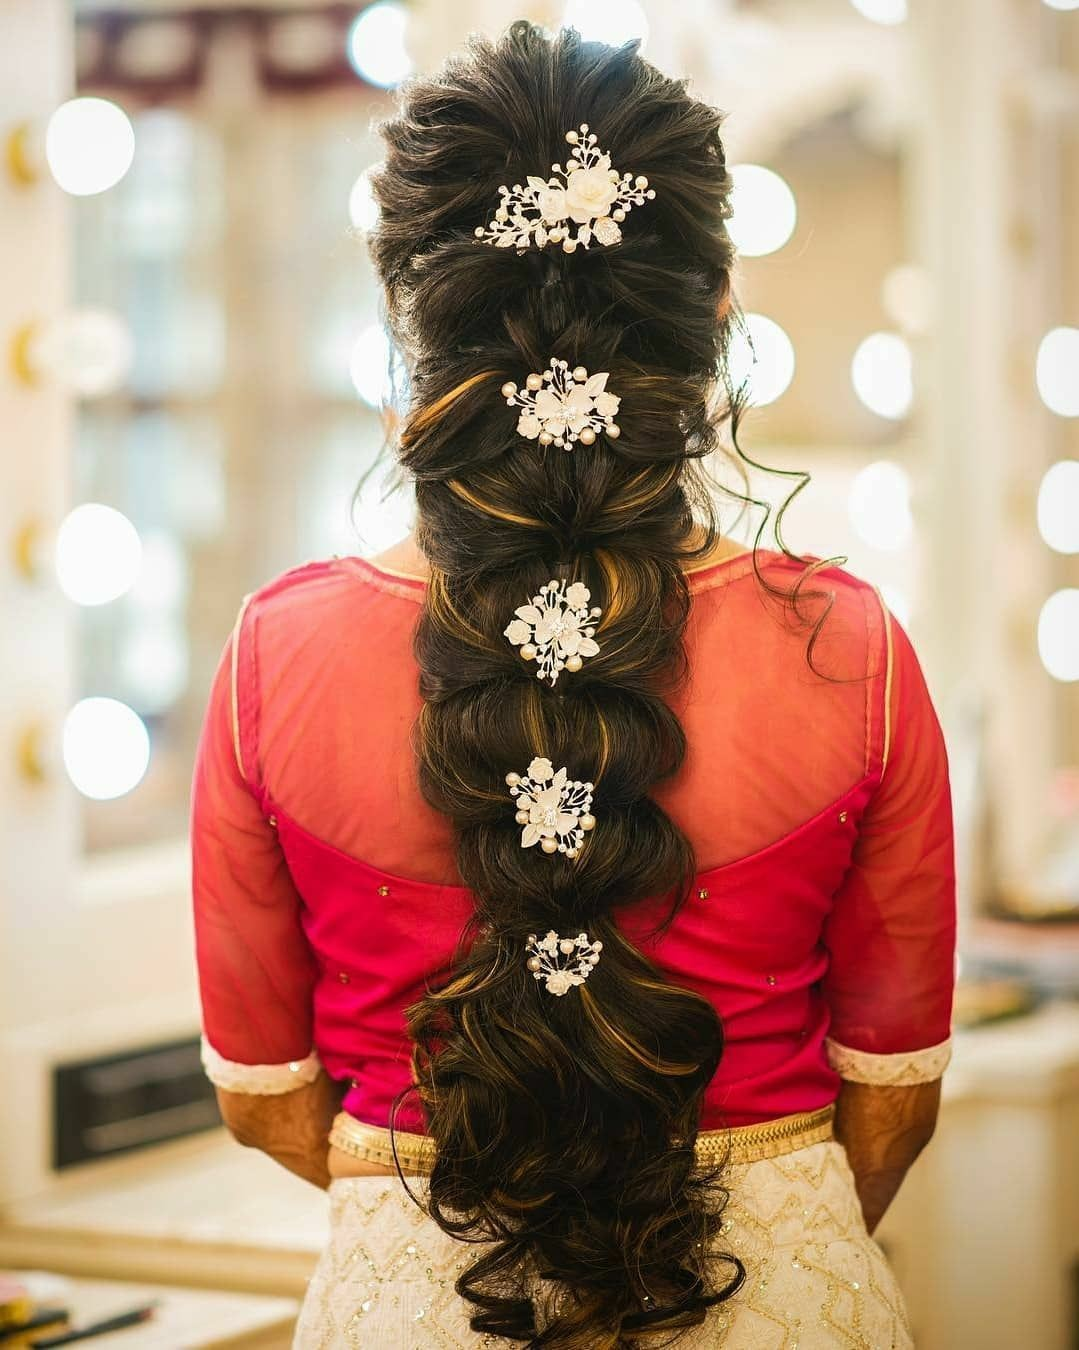 Beautiful braid with accessories